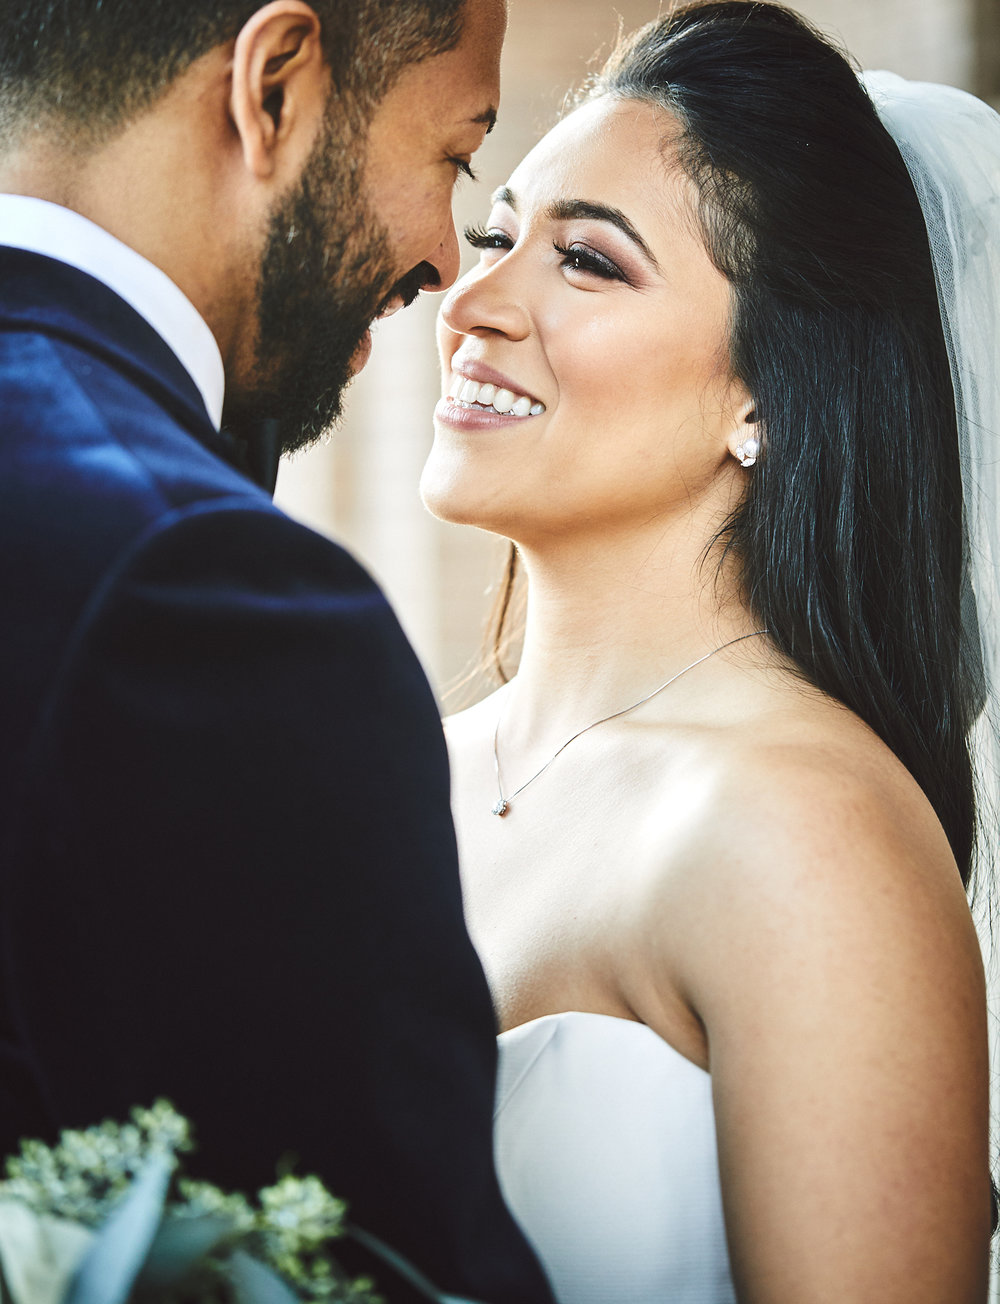 181201_TheTidesEstateWinterWeddingPhotography_ModernNJWeddingPhotographer_By_BriJohnsonWeddings_0105.jpg